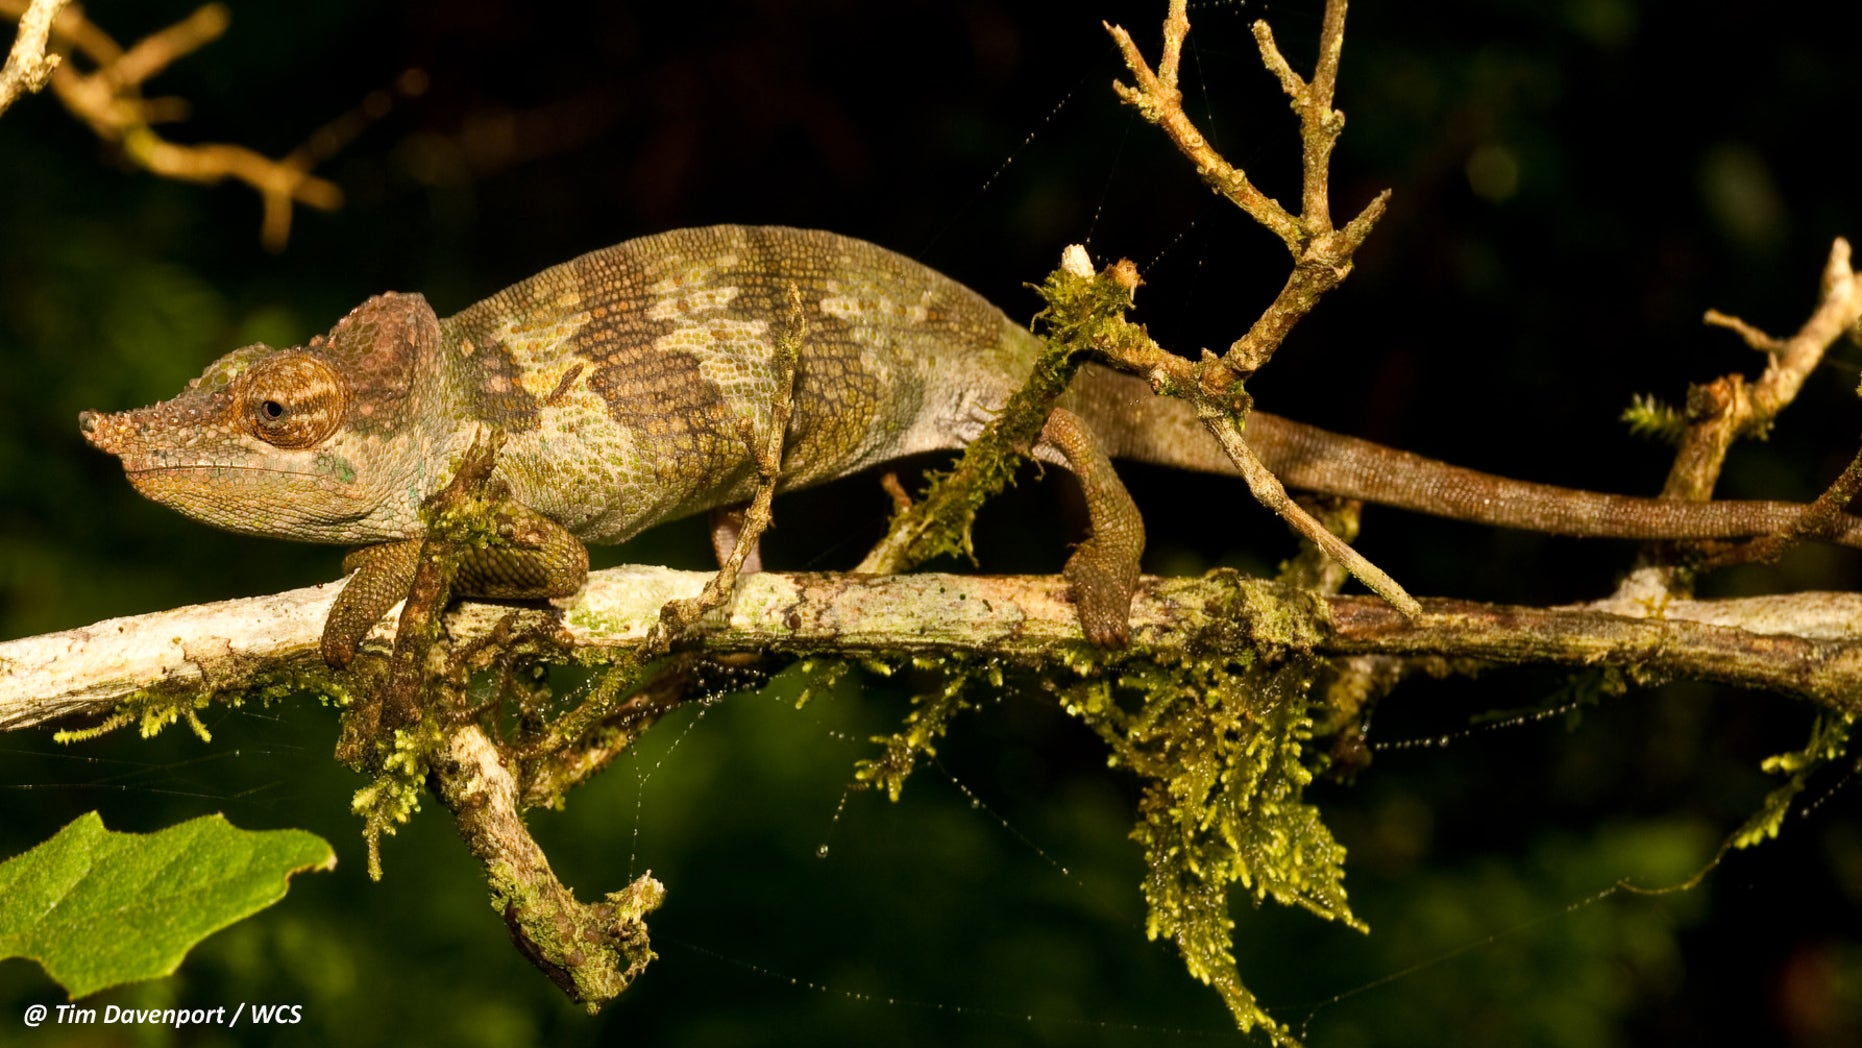 A new species of chameleon, named Kinyongia msuyae, has been discovered in Tanzania. (Tim Davenport/WCS)